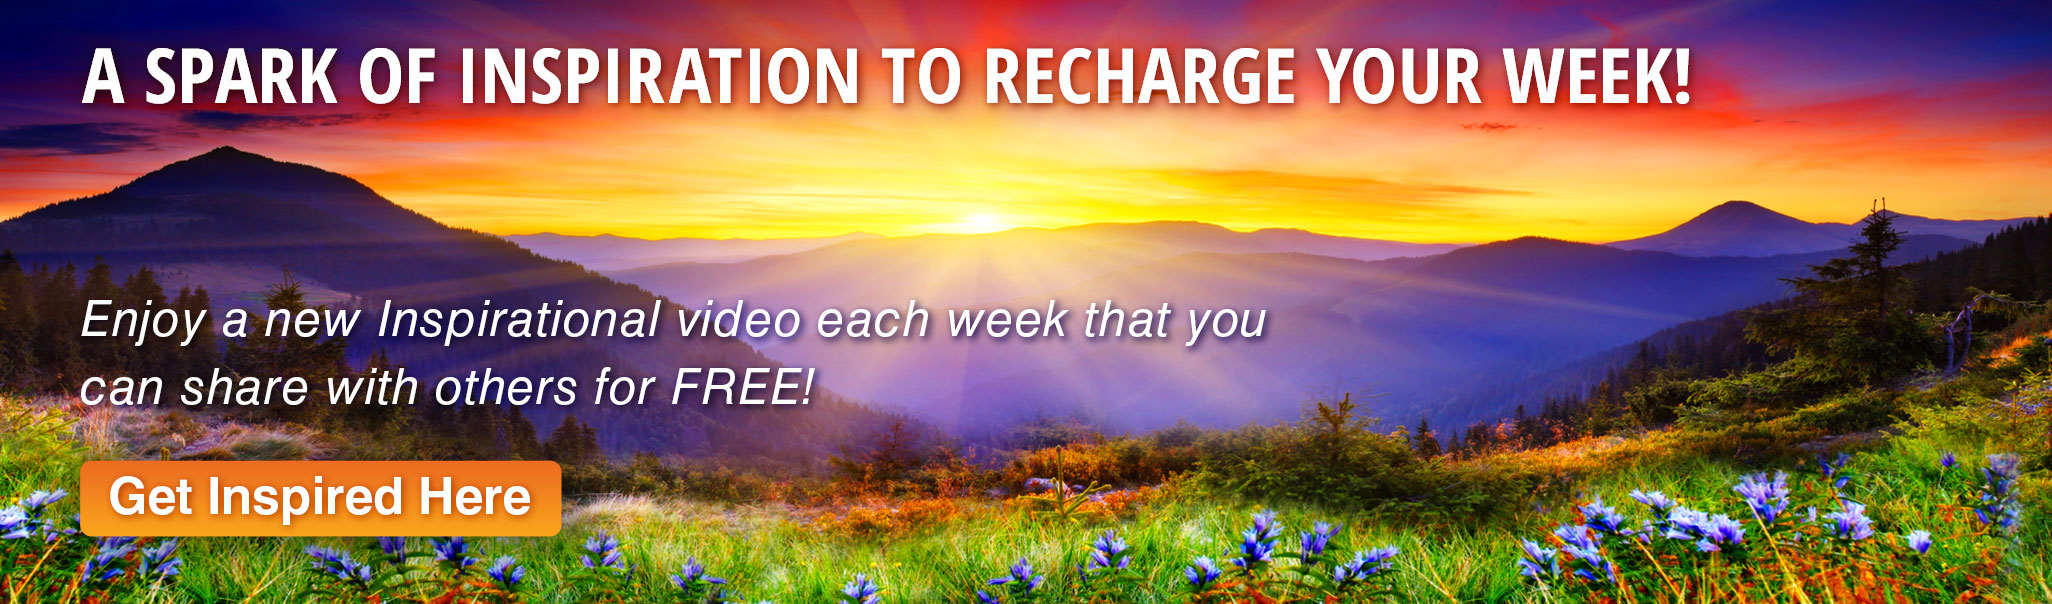 Get Free Inspirational Videos